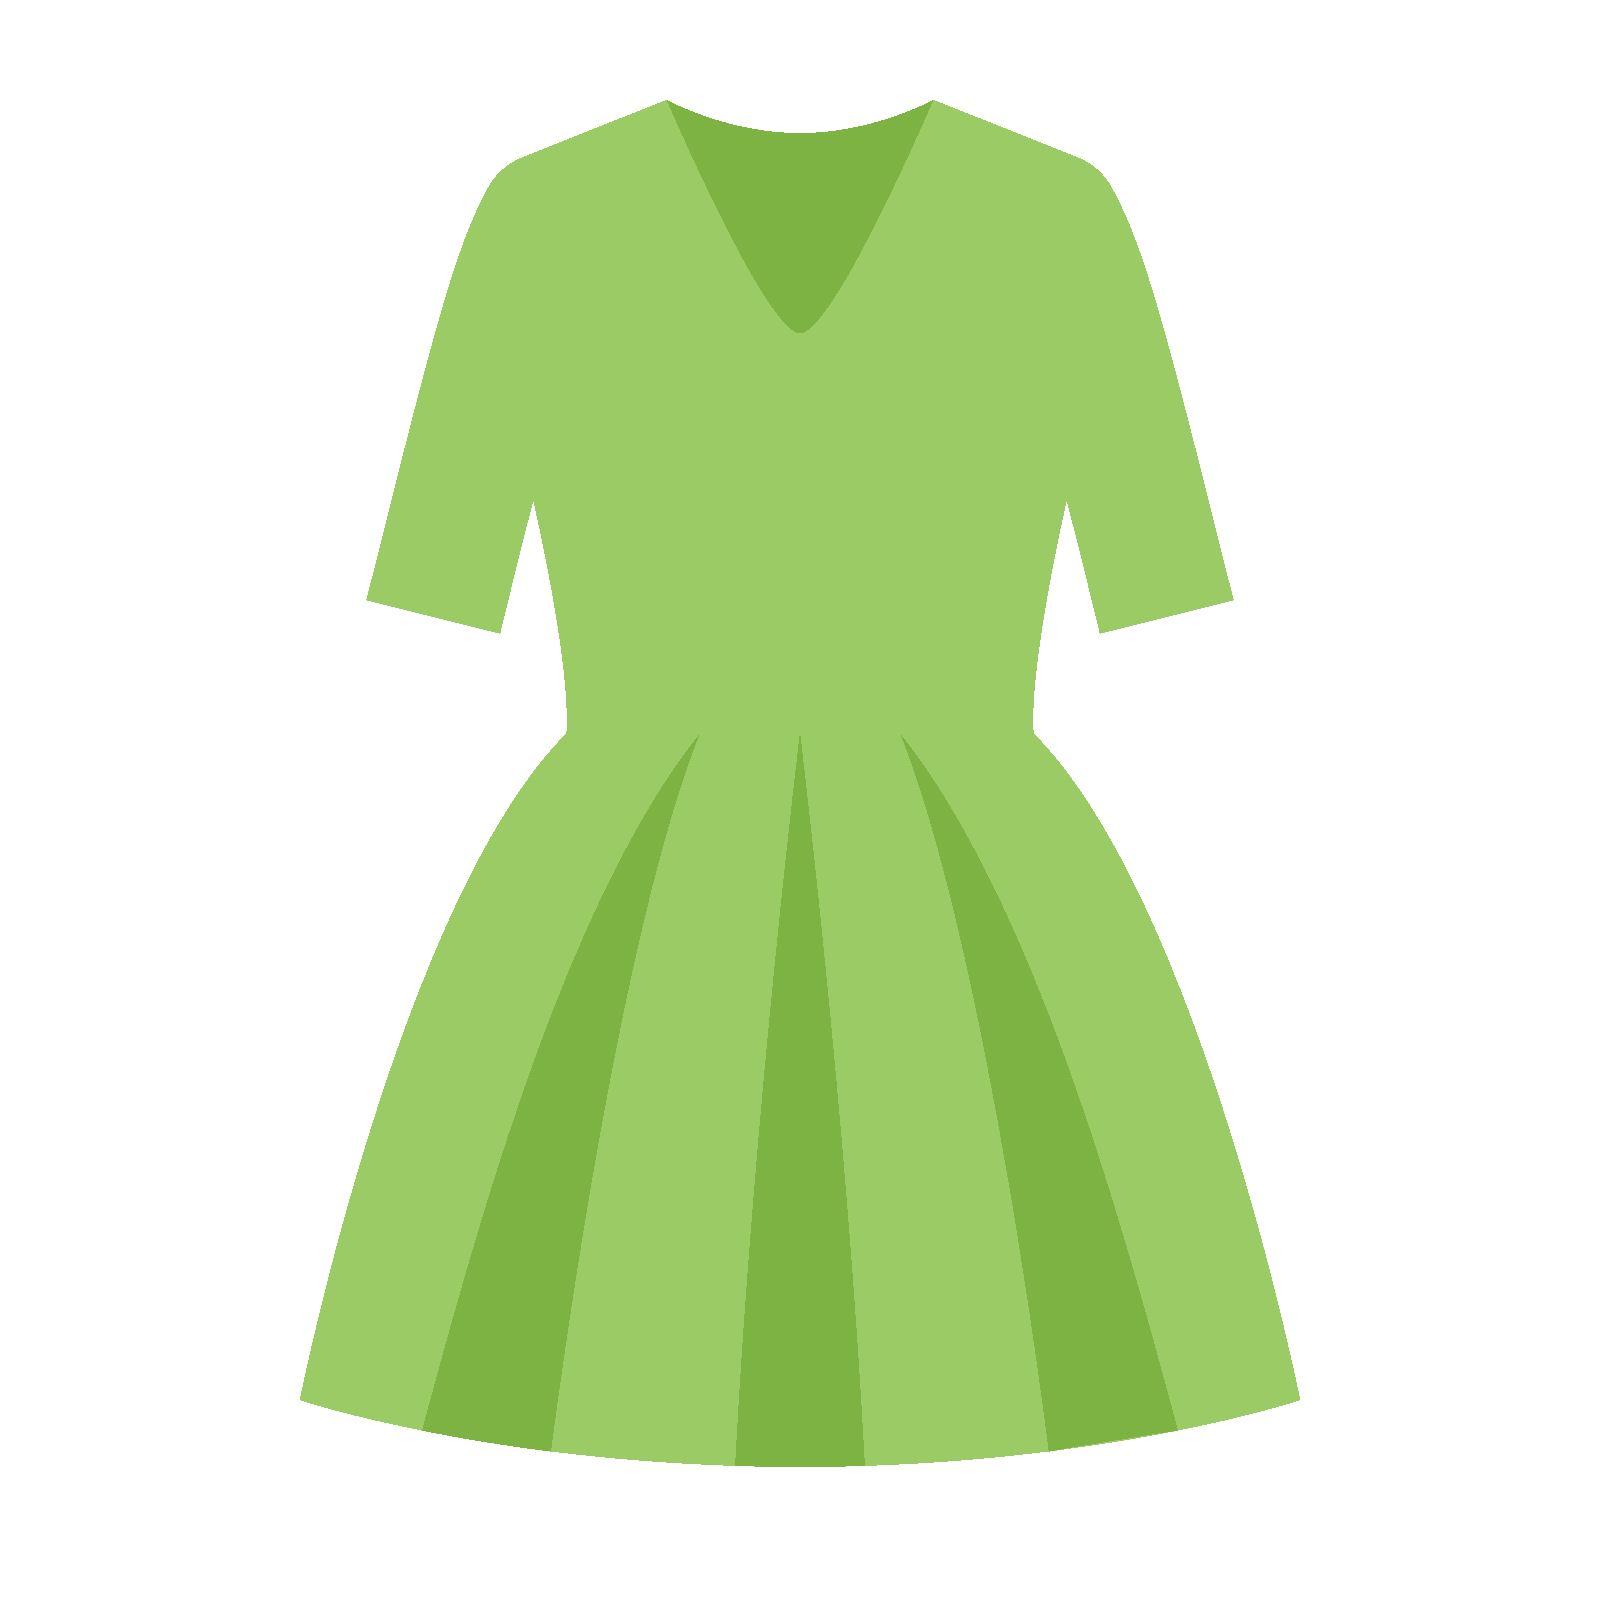 Green dress png. Icon free download and